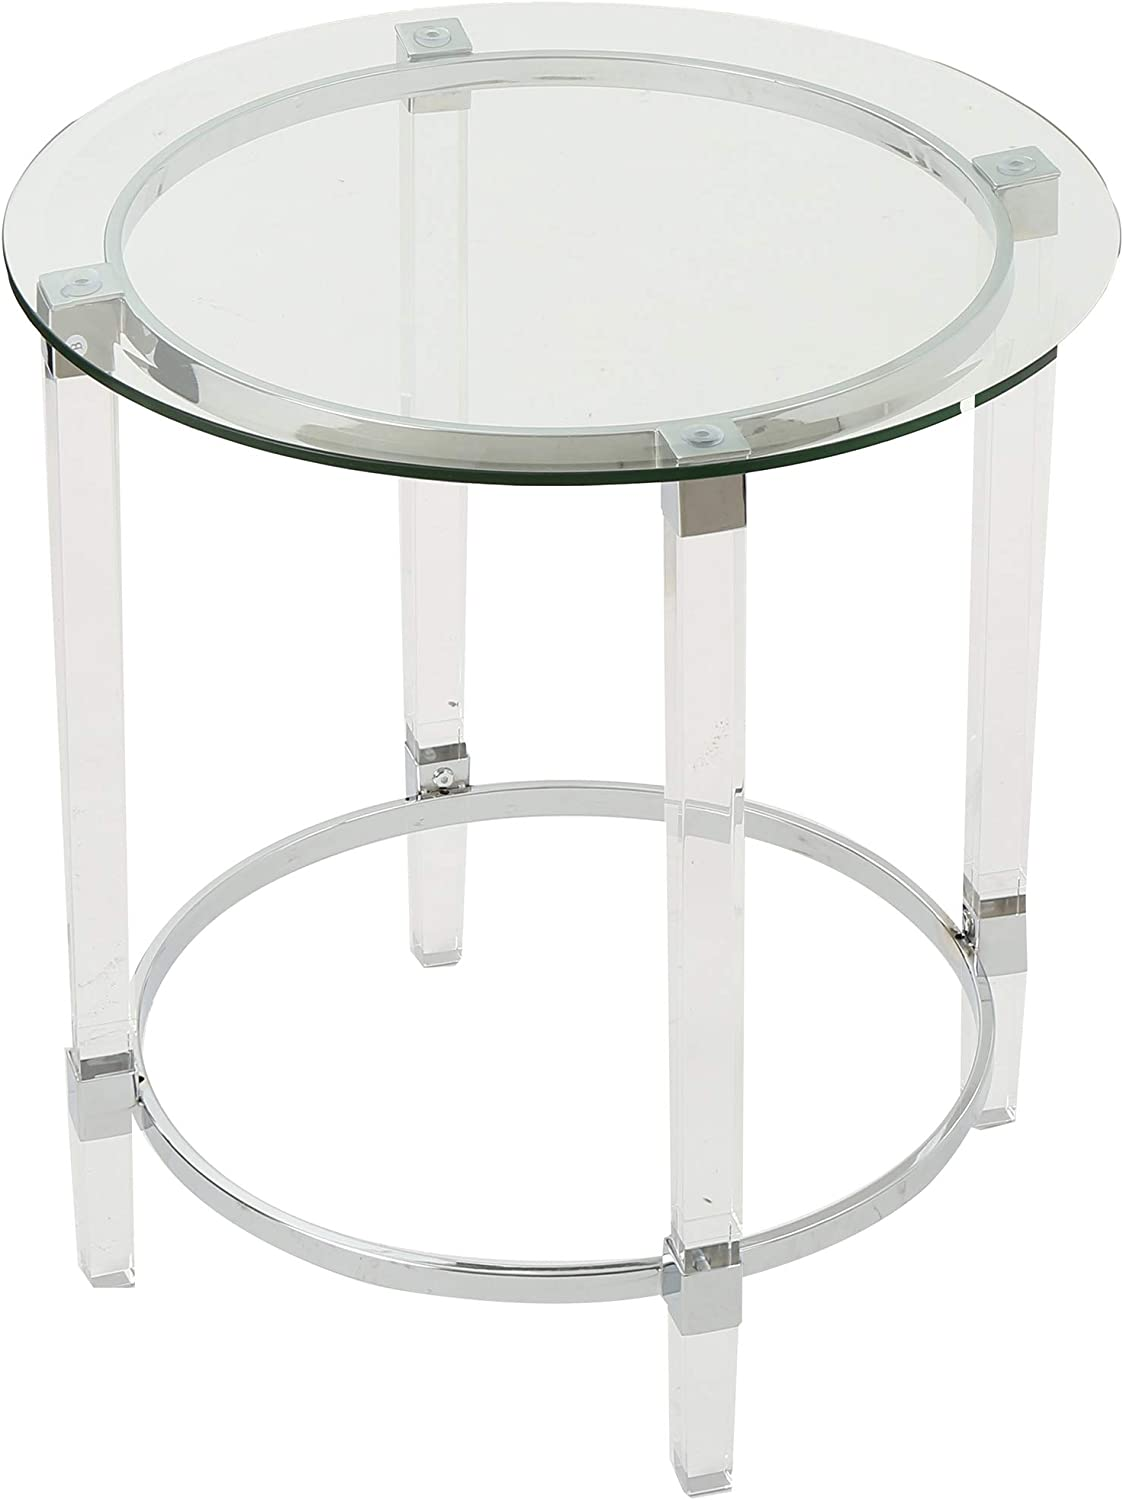 Amazon Com Christopher Knight Home Orianna Acrylic And Tempered Glass Circular Side Table Clear Furniture Decor